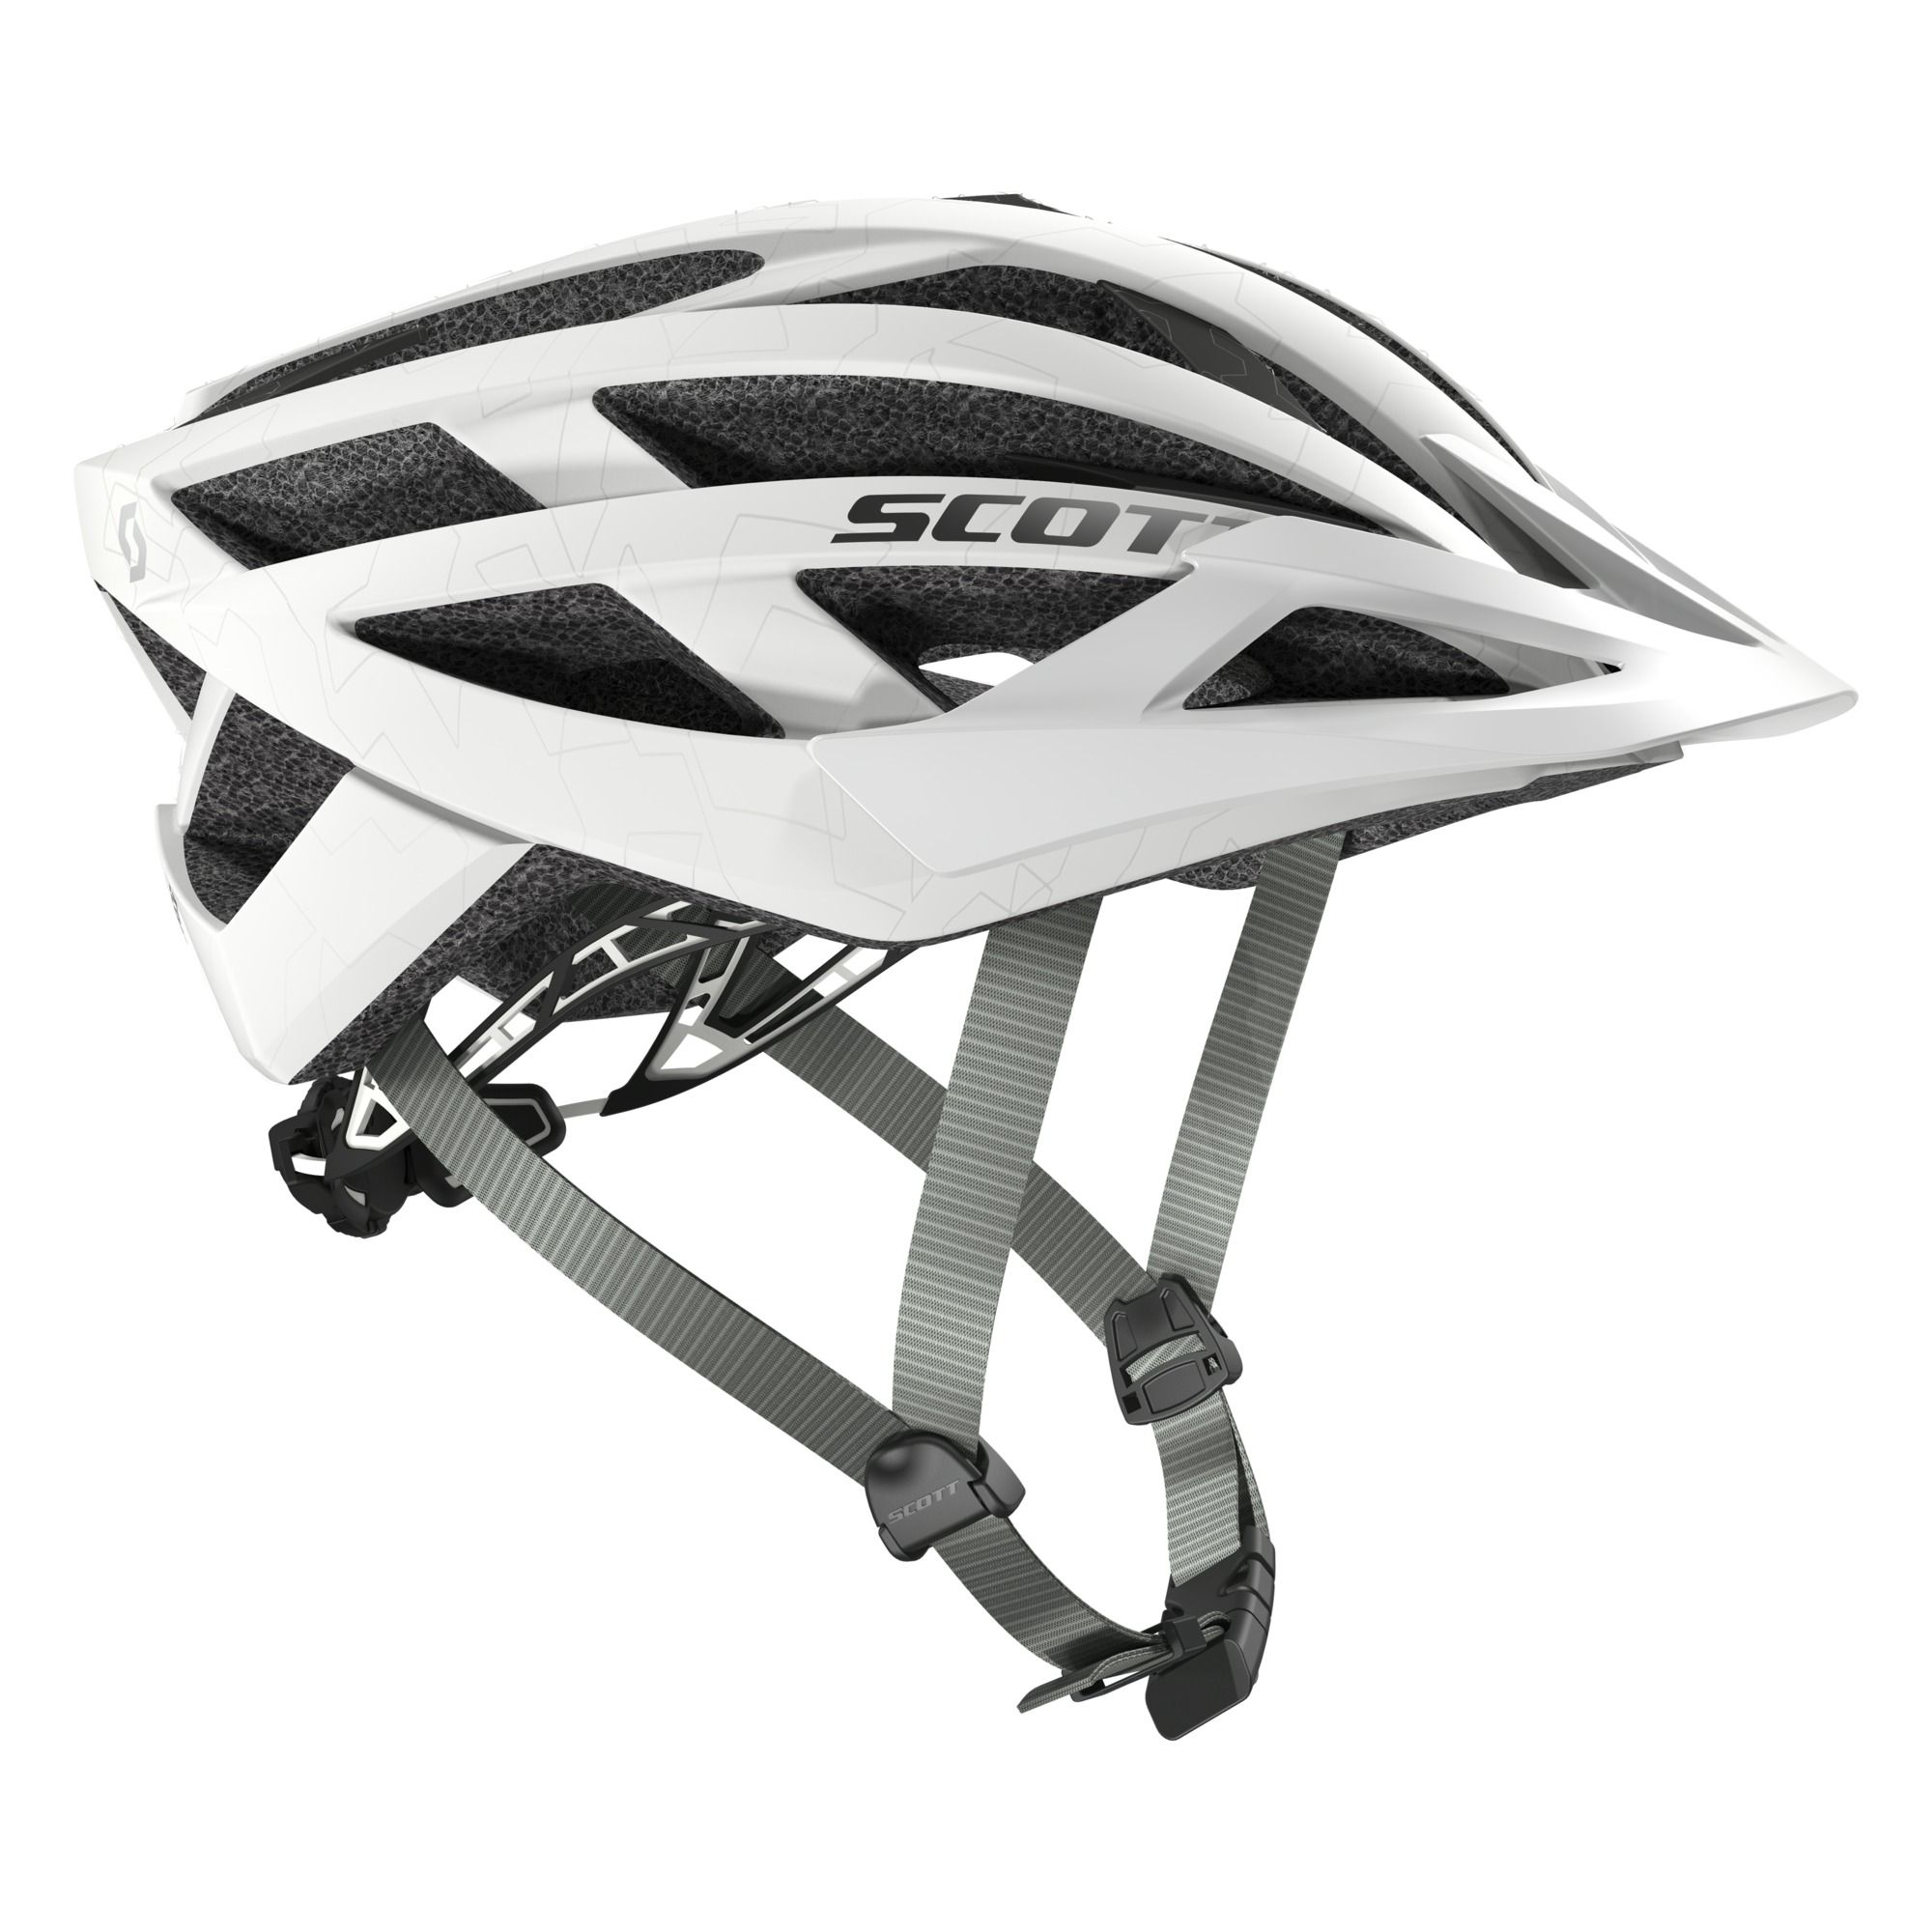 The Scott Wit Helmet Offers Top Level Performance At A Mid Level